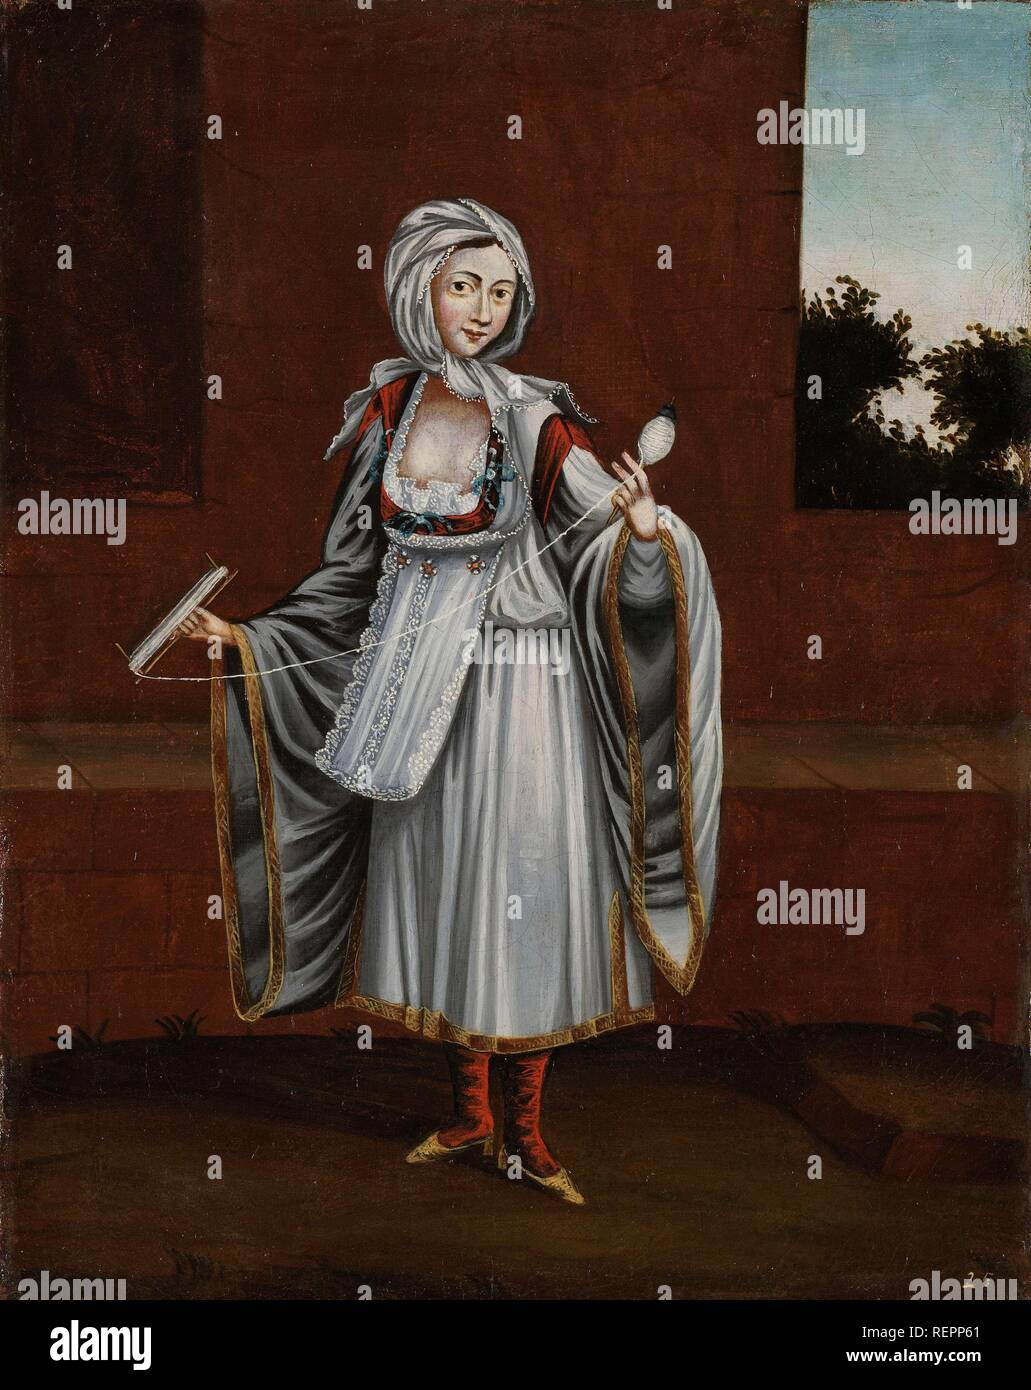 Woman from the Island of Kithnos (Thermia). Dating: 1700 - 1737. Place: Istanbul. Measurements: h 39 cm × w 31 cm. Museum: Rijksmuseum, Amsterdam. Author: Jean Baptiste Vanmour (workshop of). - Stock Image